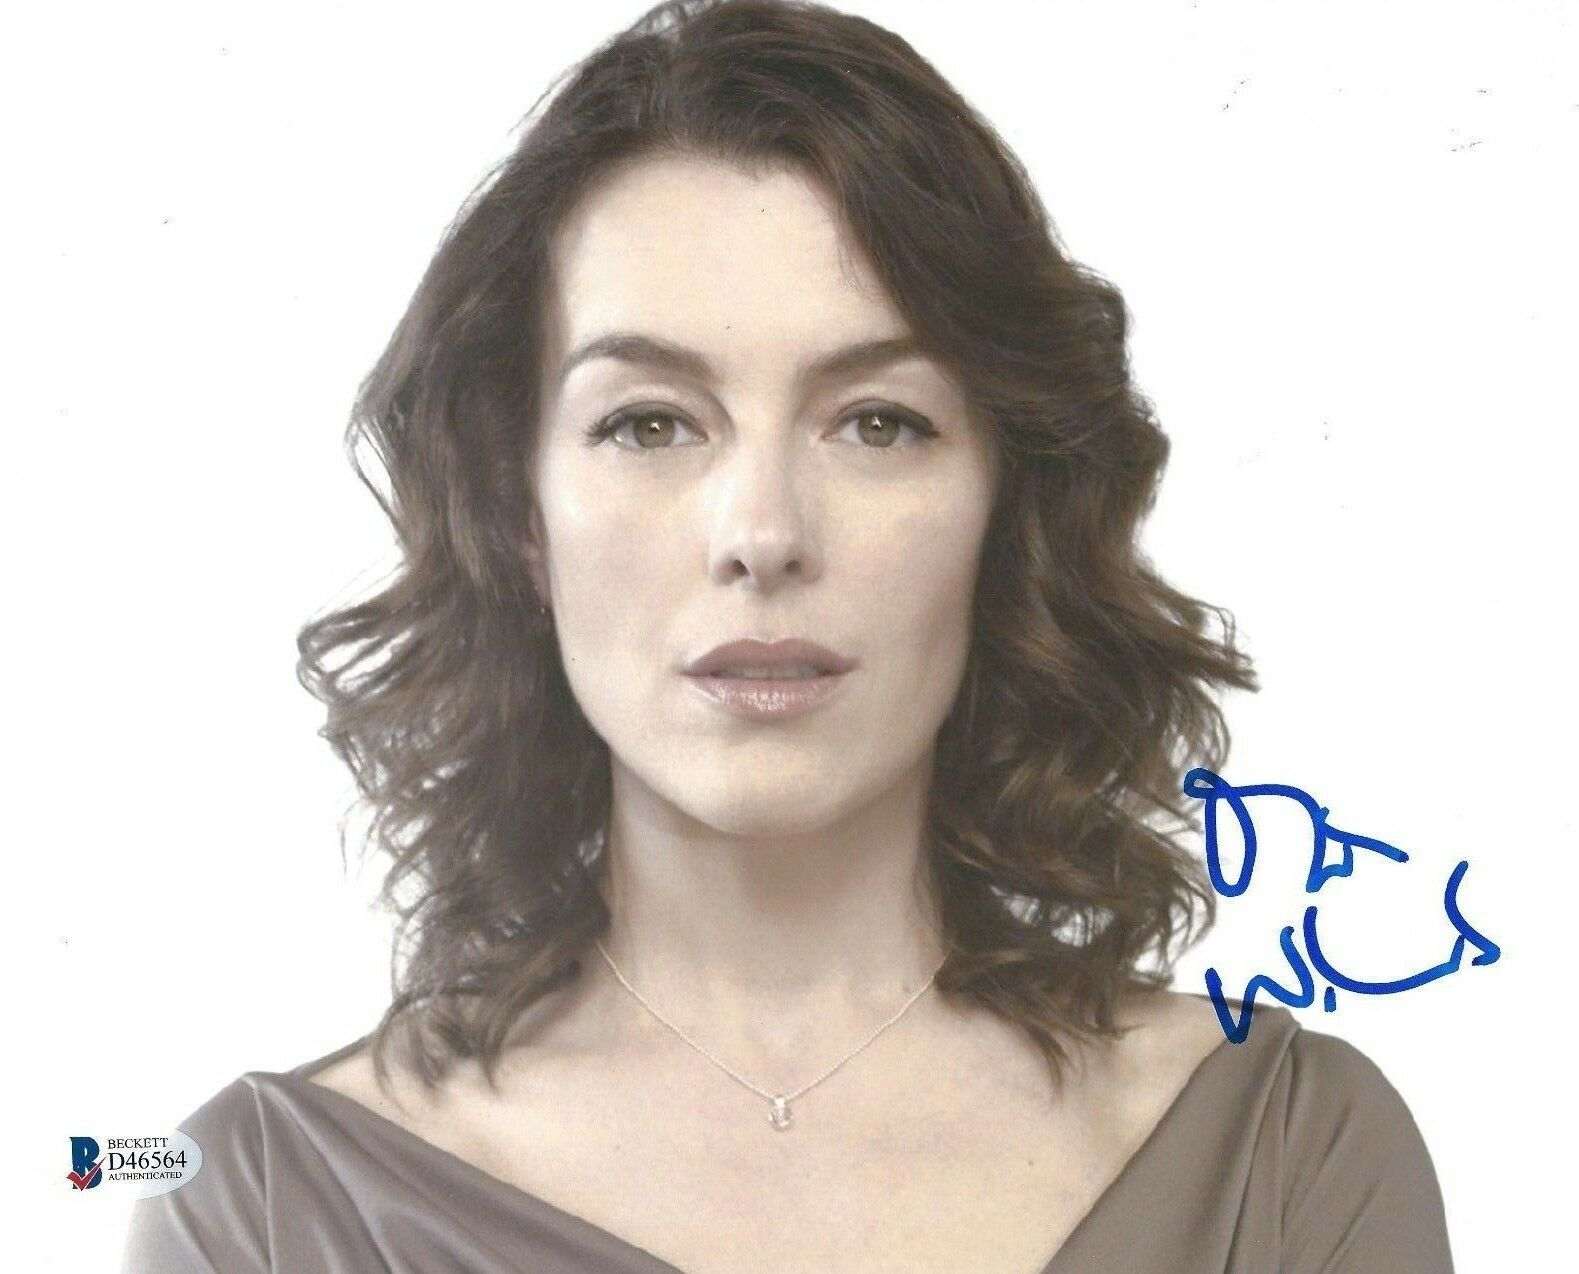 Olivia Williams Signed 8x10 Photo *The Ghost Writer *The Sixth Sense BAS D46564